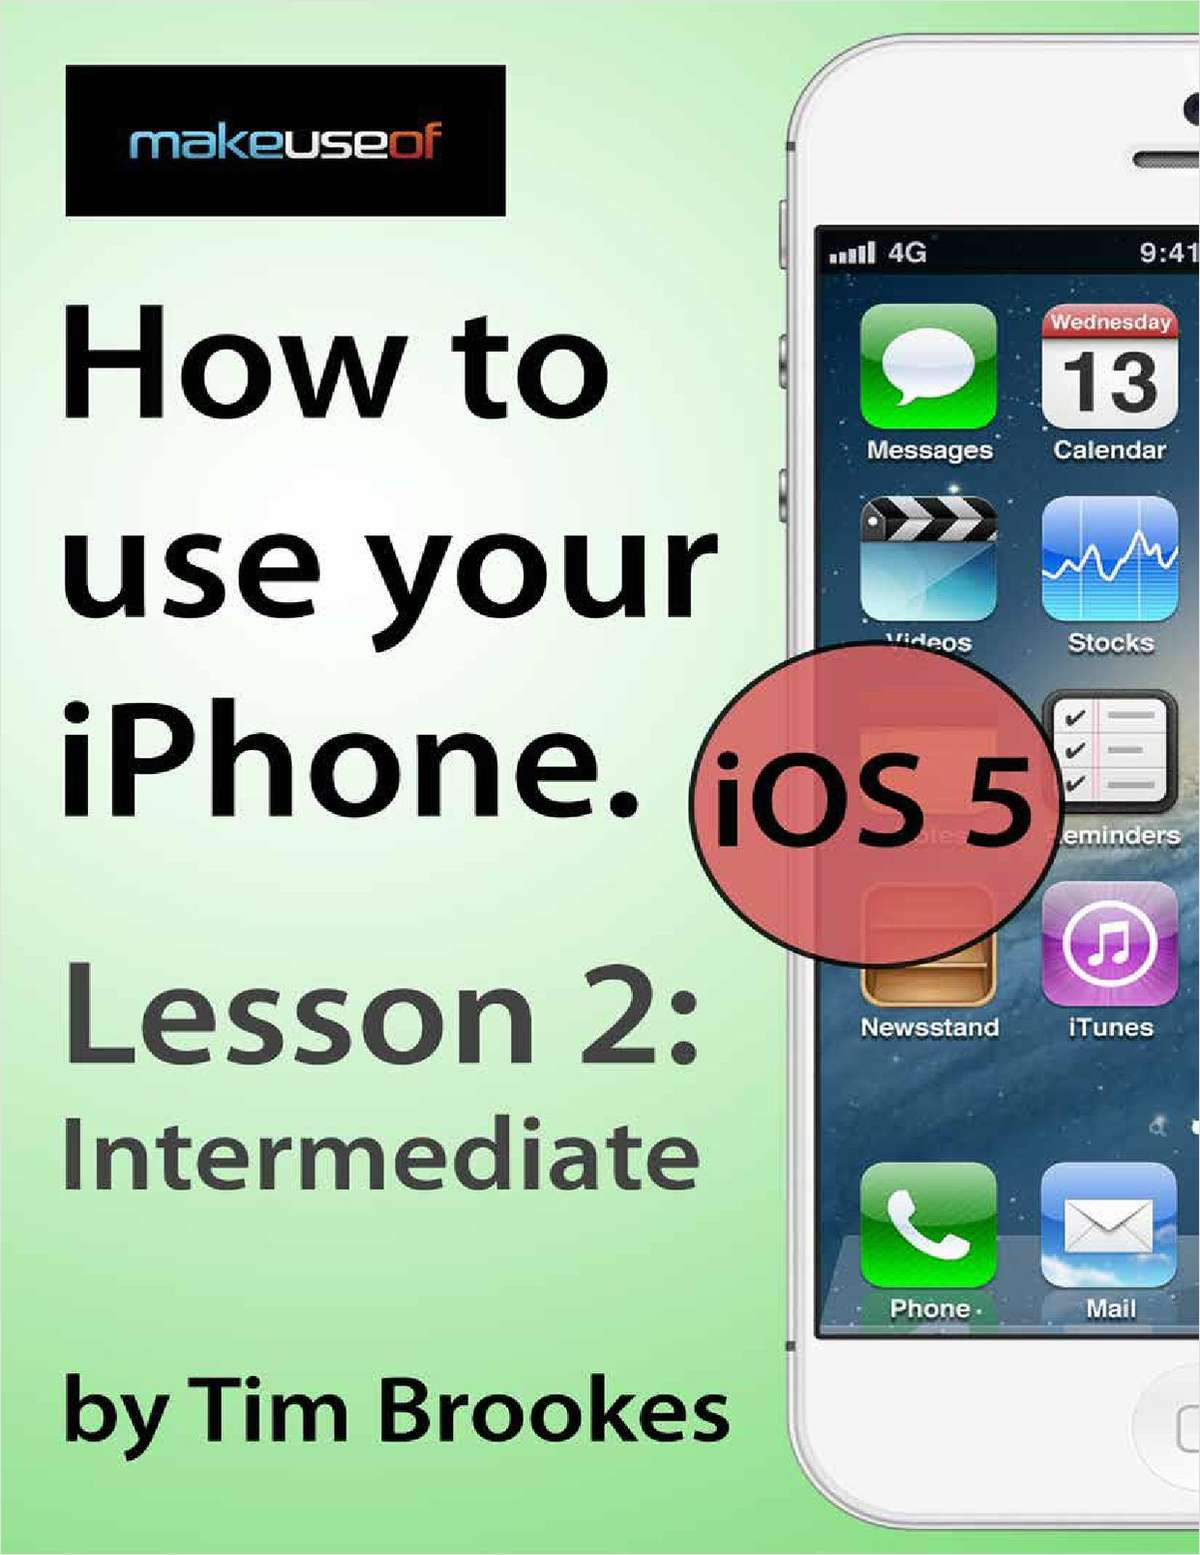 How To Use Your iPhone iOS5: Lesson 2 Intermediate